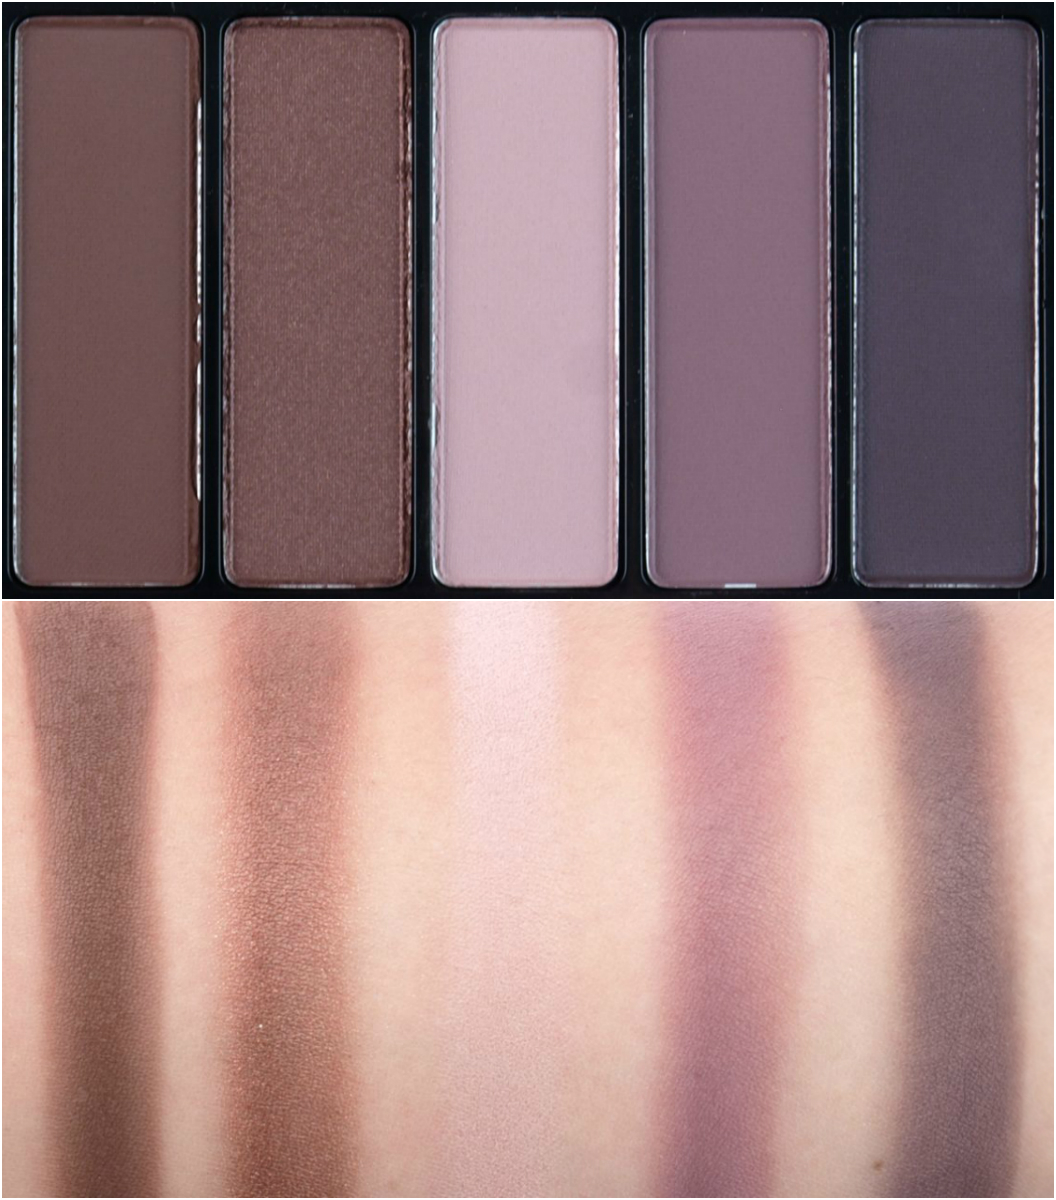 L'Oreal Paris Color Riche La Palette Nude 2 Eyeshadow Palette: Review and Swatches